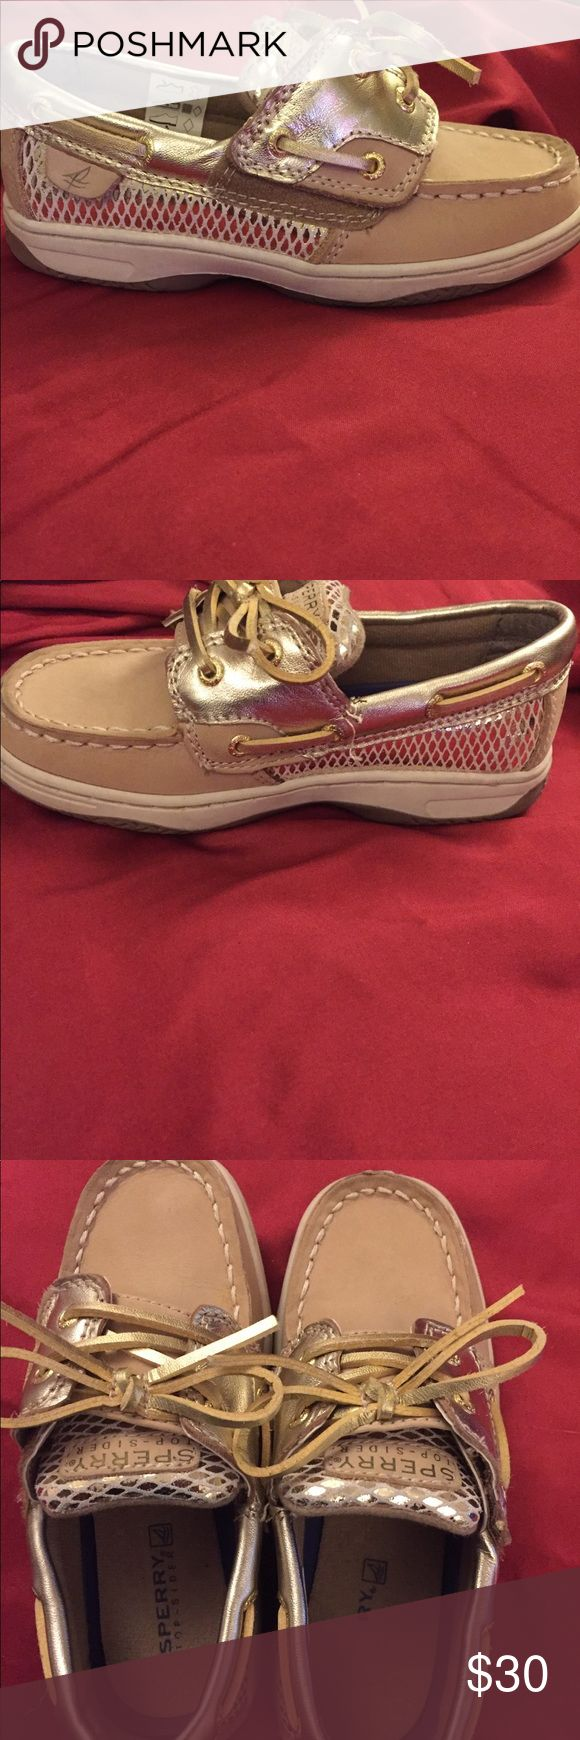 EUC Sherry Shoes These shoes are in awesome condition. My daughter wore them only twice. I'm sad to the them go because they are so cute. Sperry Top-Sider Shoes